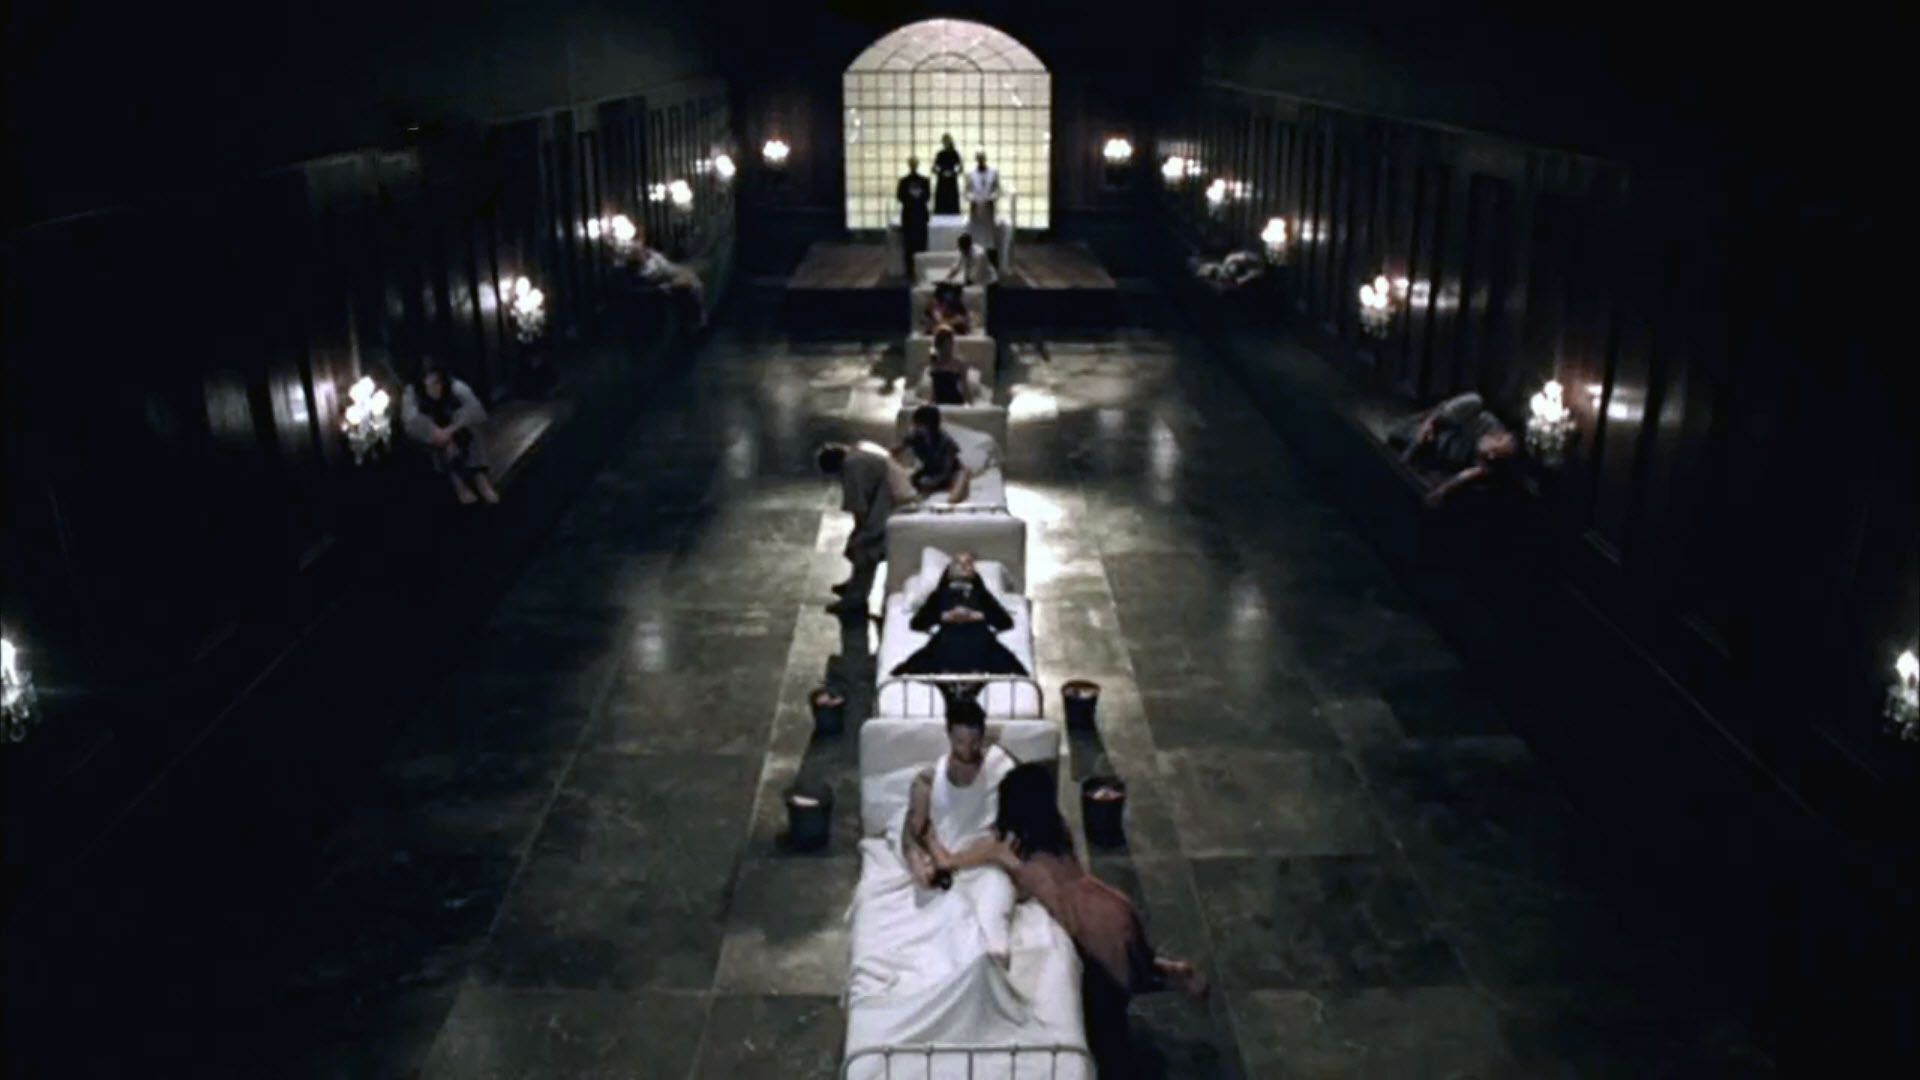 American Horror Story Hd Wallpapers For Desktop Download 1920 1080